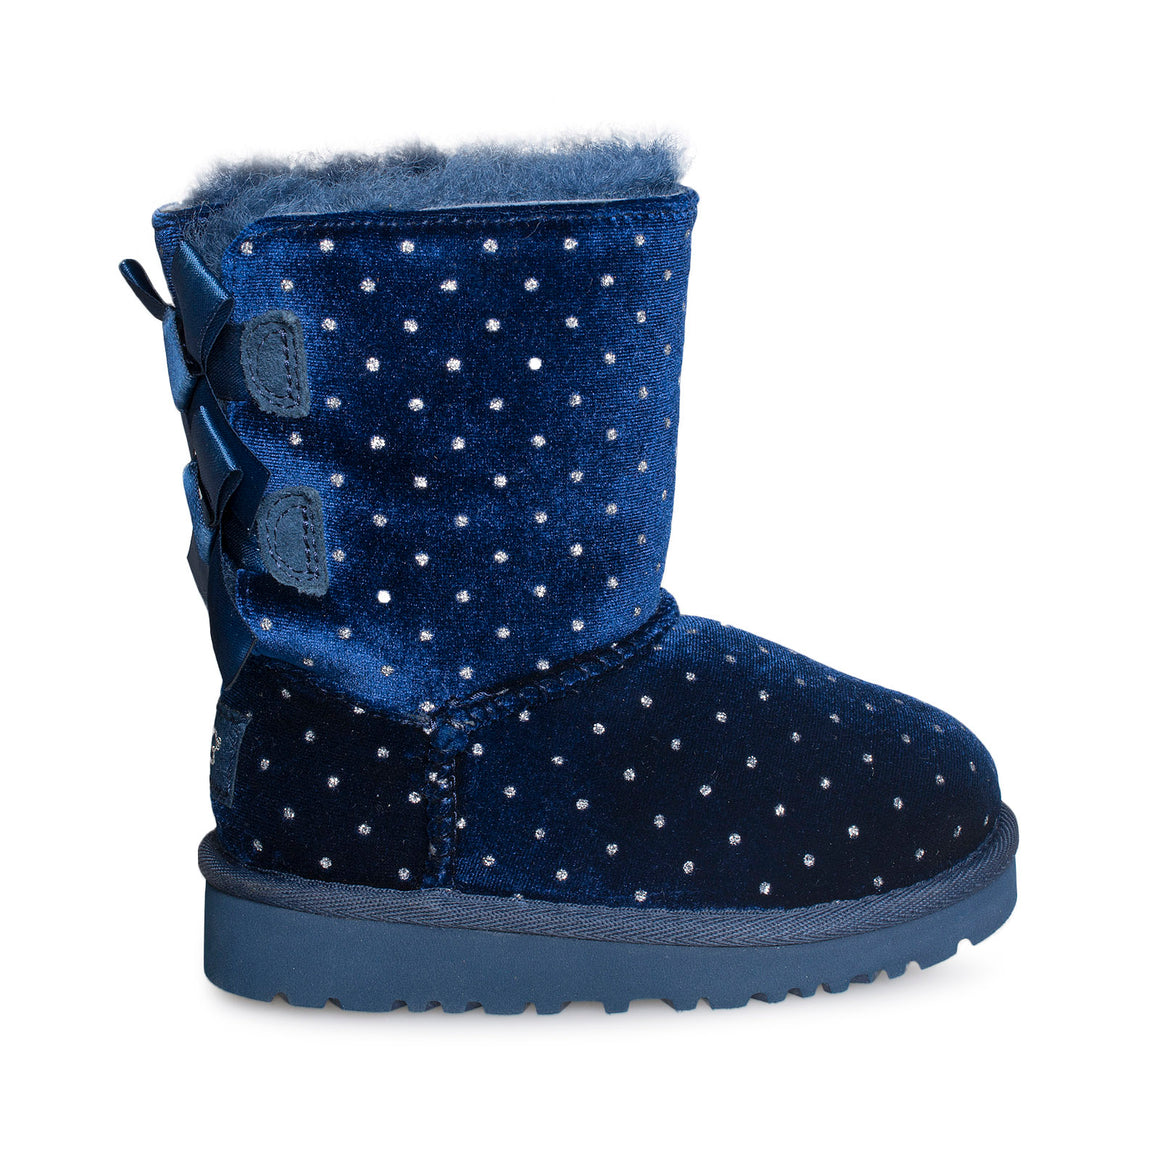 UGG Bailey Bow Starlight Navy Boots - Little Kid